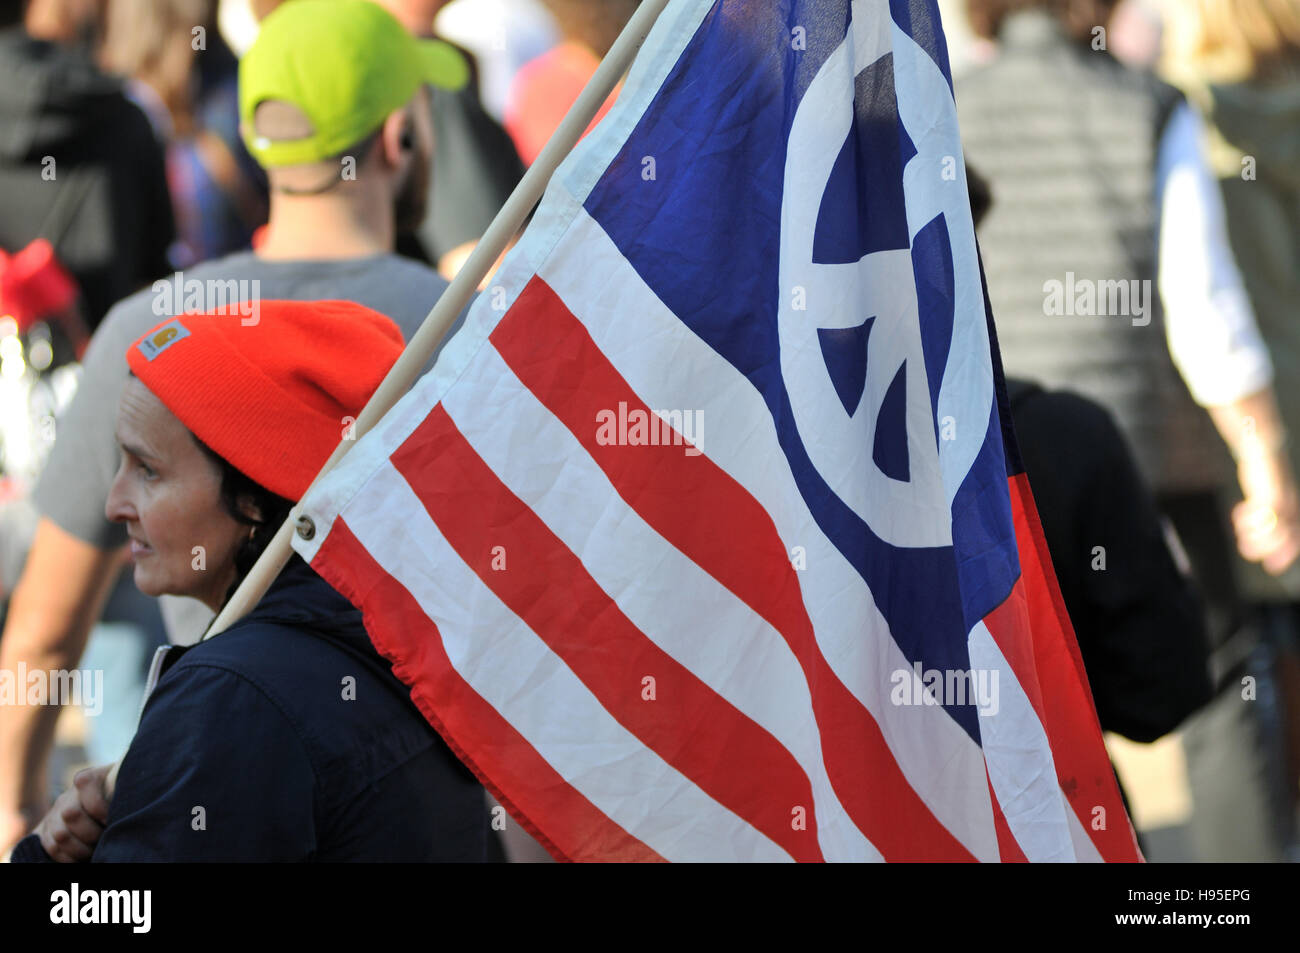 Philadelphia, Pennsylvania, USA. 19th November, 2016. Protesters carry signs and flags as they march on Market St. - Stock Image